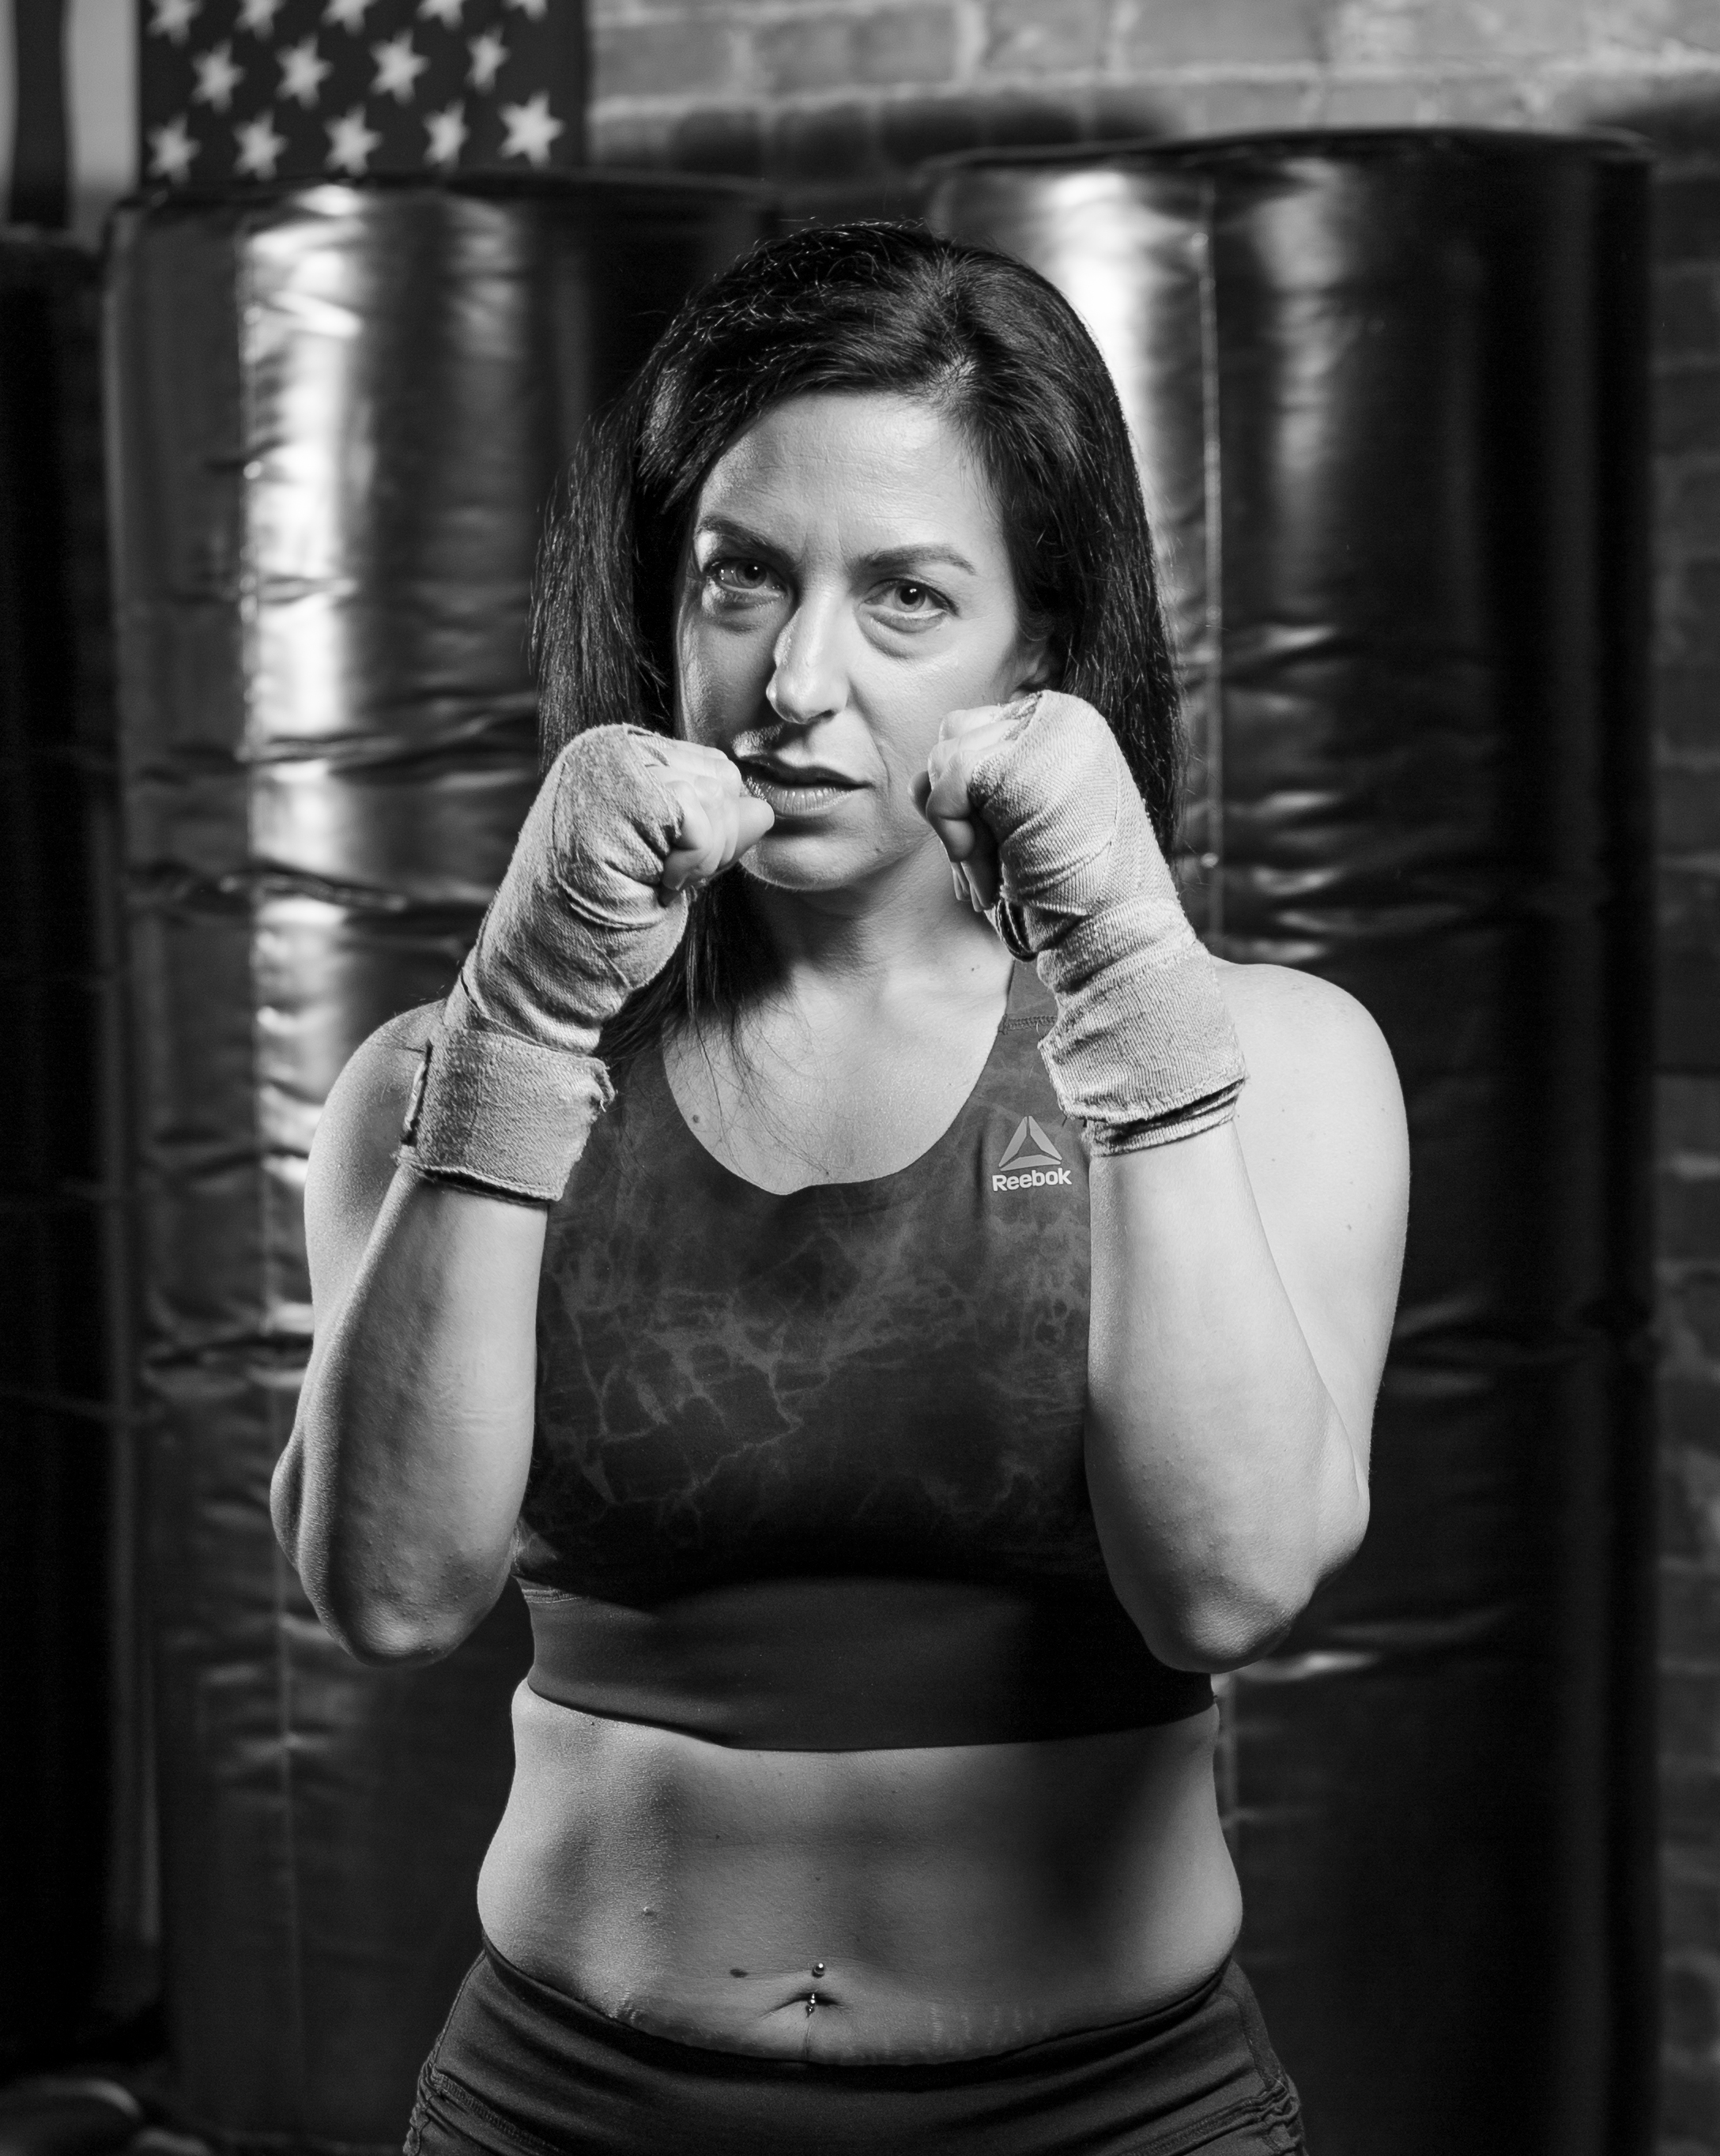 on location lifestyle portraiture hudson valley by caylena cahill. fitness photography. kickboxing. monroe ny.